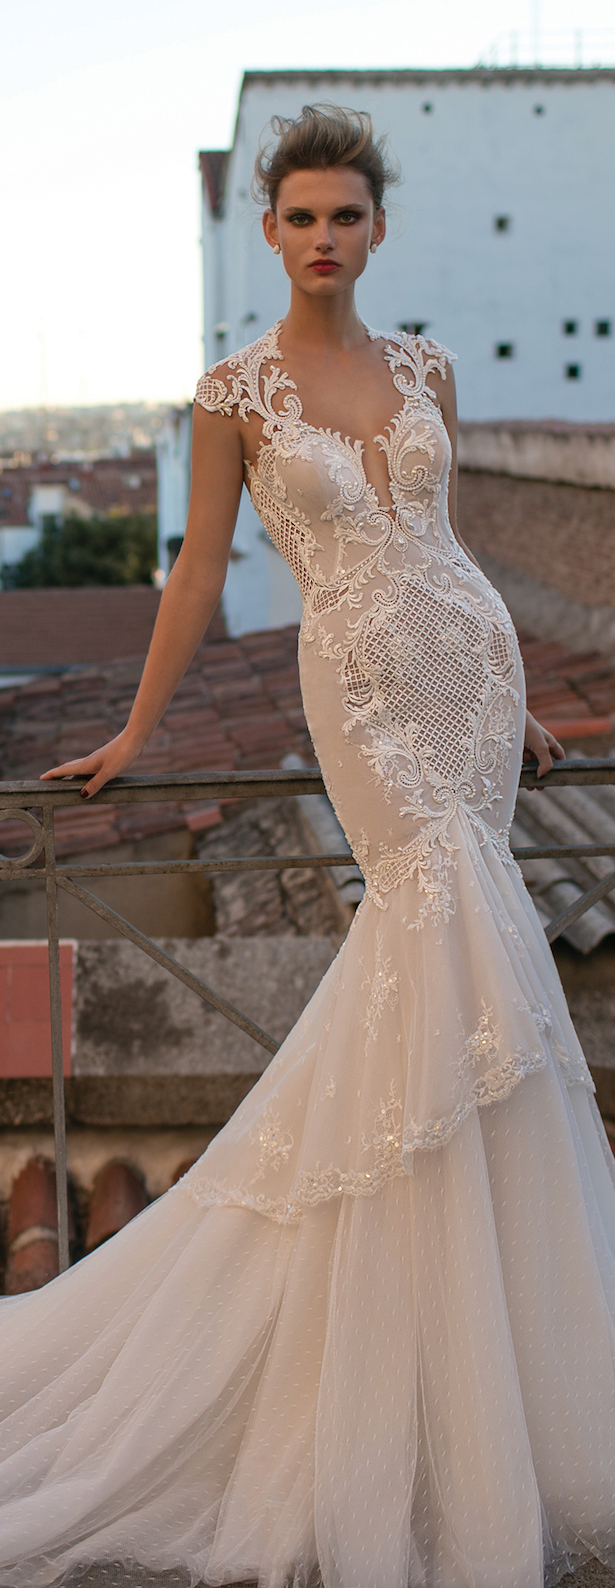 Berta bridal spring 2016 collection part 2 belle the for Where to buy berta wedding dresses